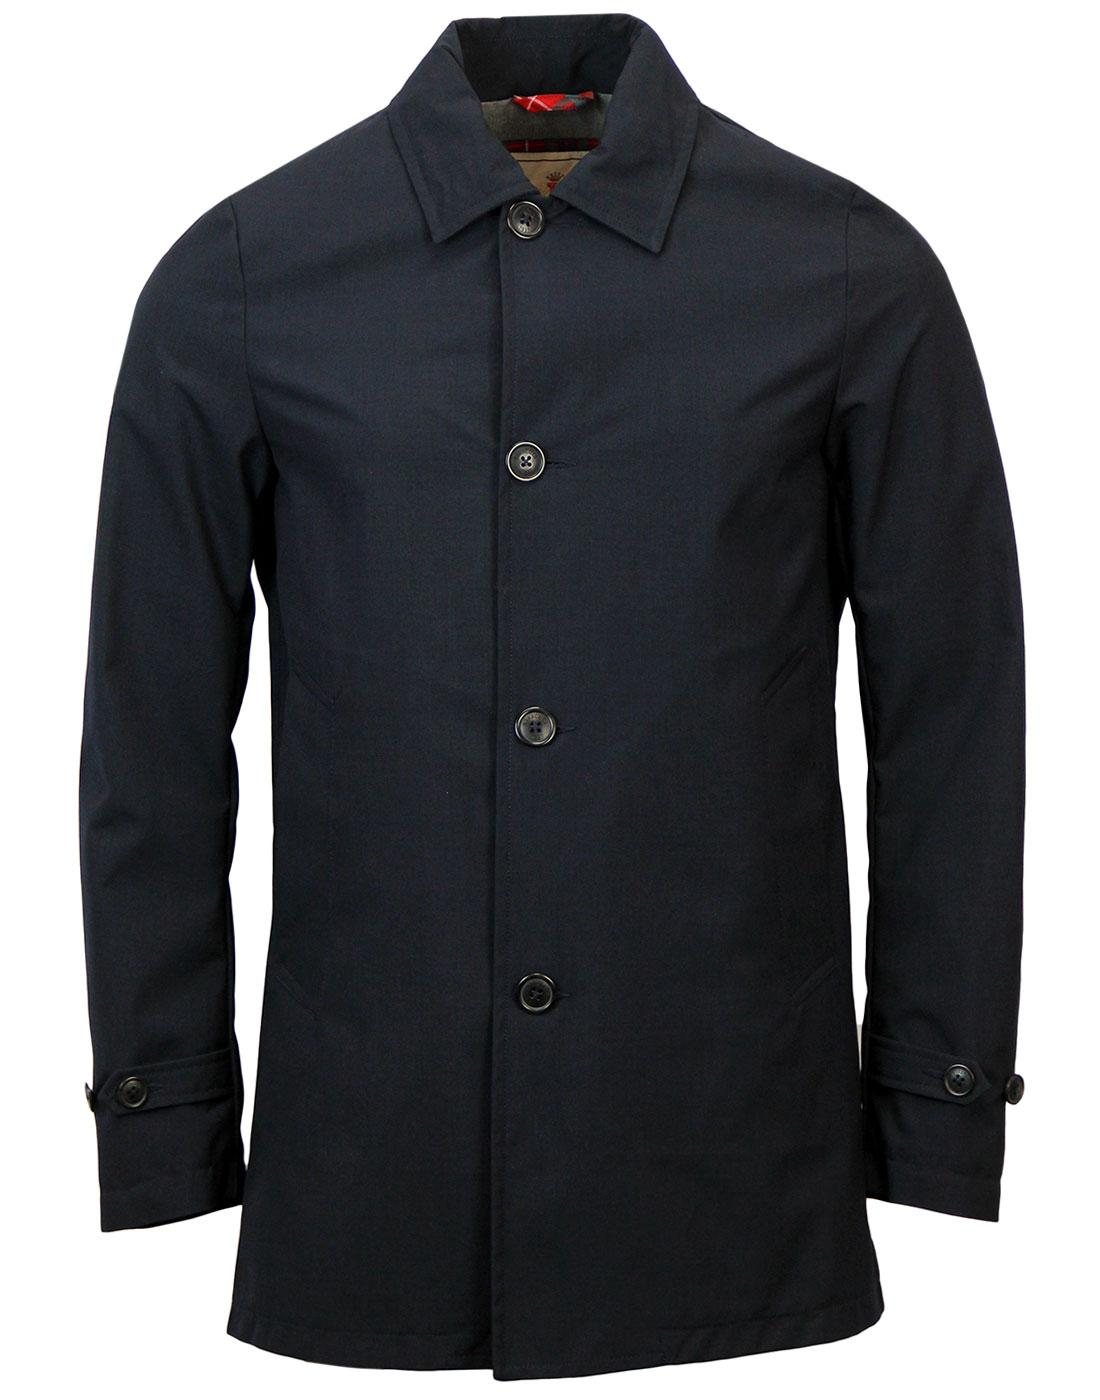 Muirfield BARACUTA Mod Bonded Mac Trench Coat